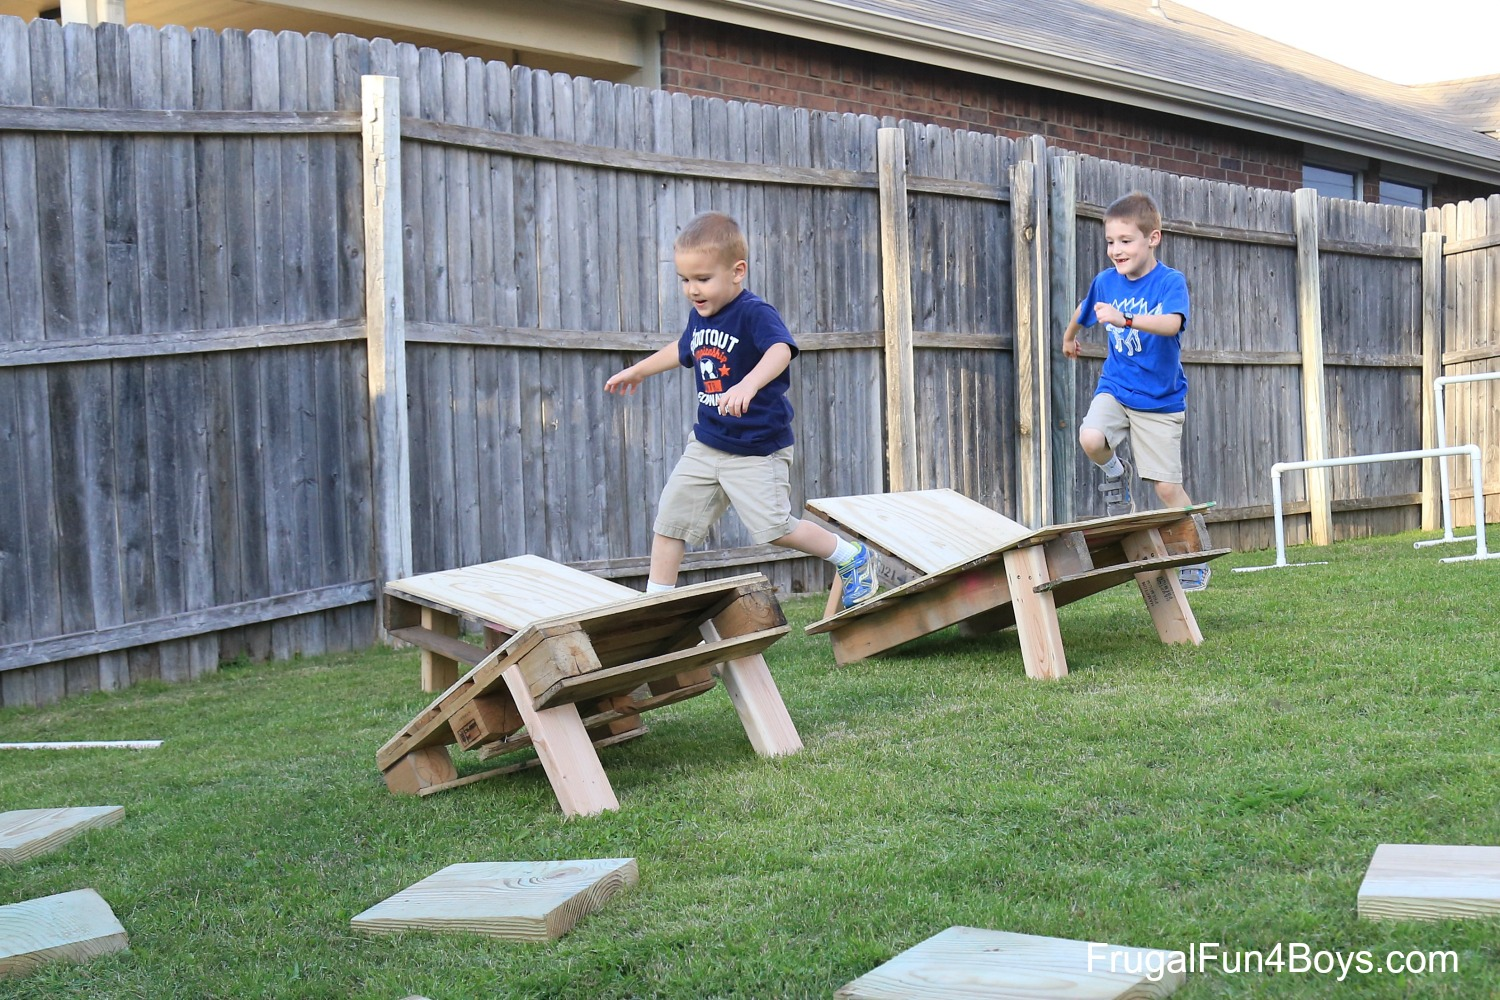 Backyard Obstacle Course - American Ninja Warrior Style!